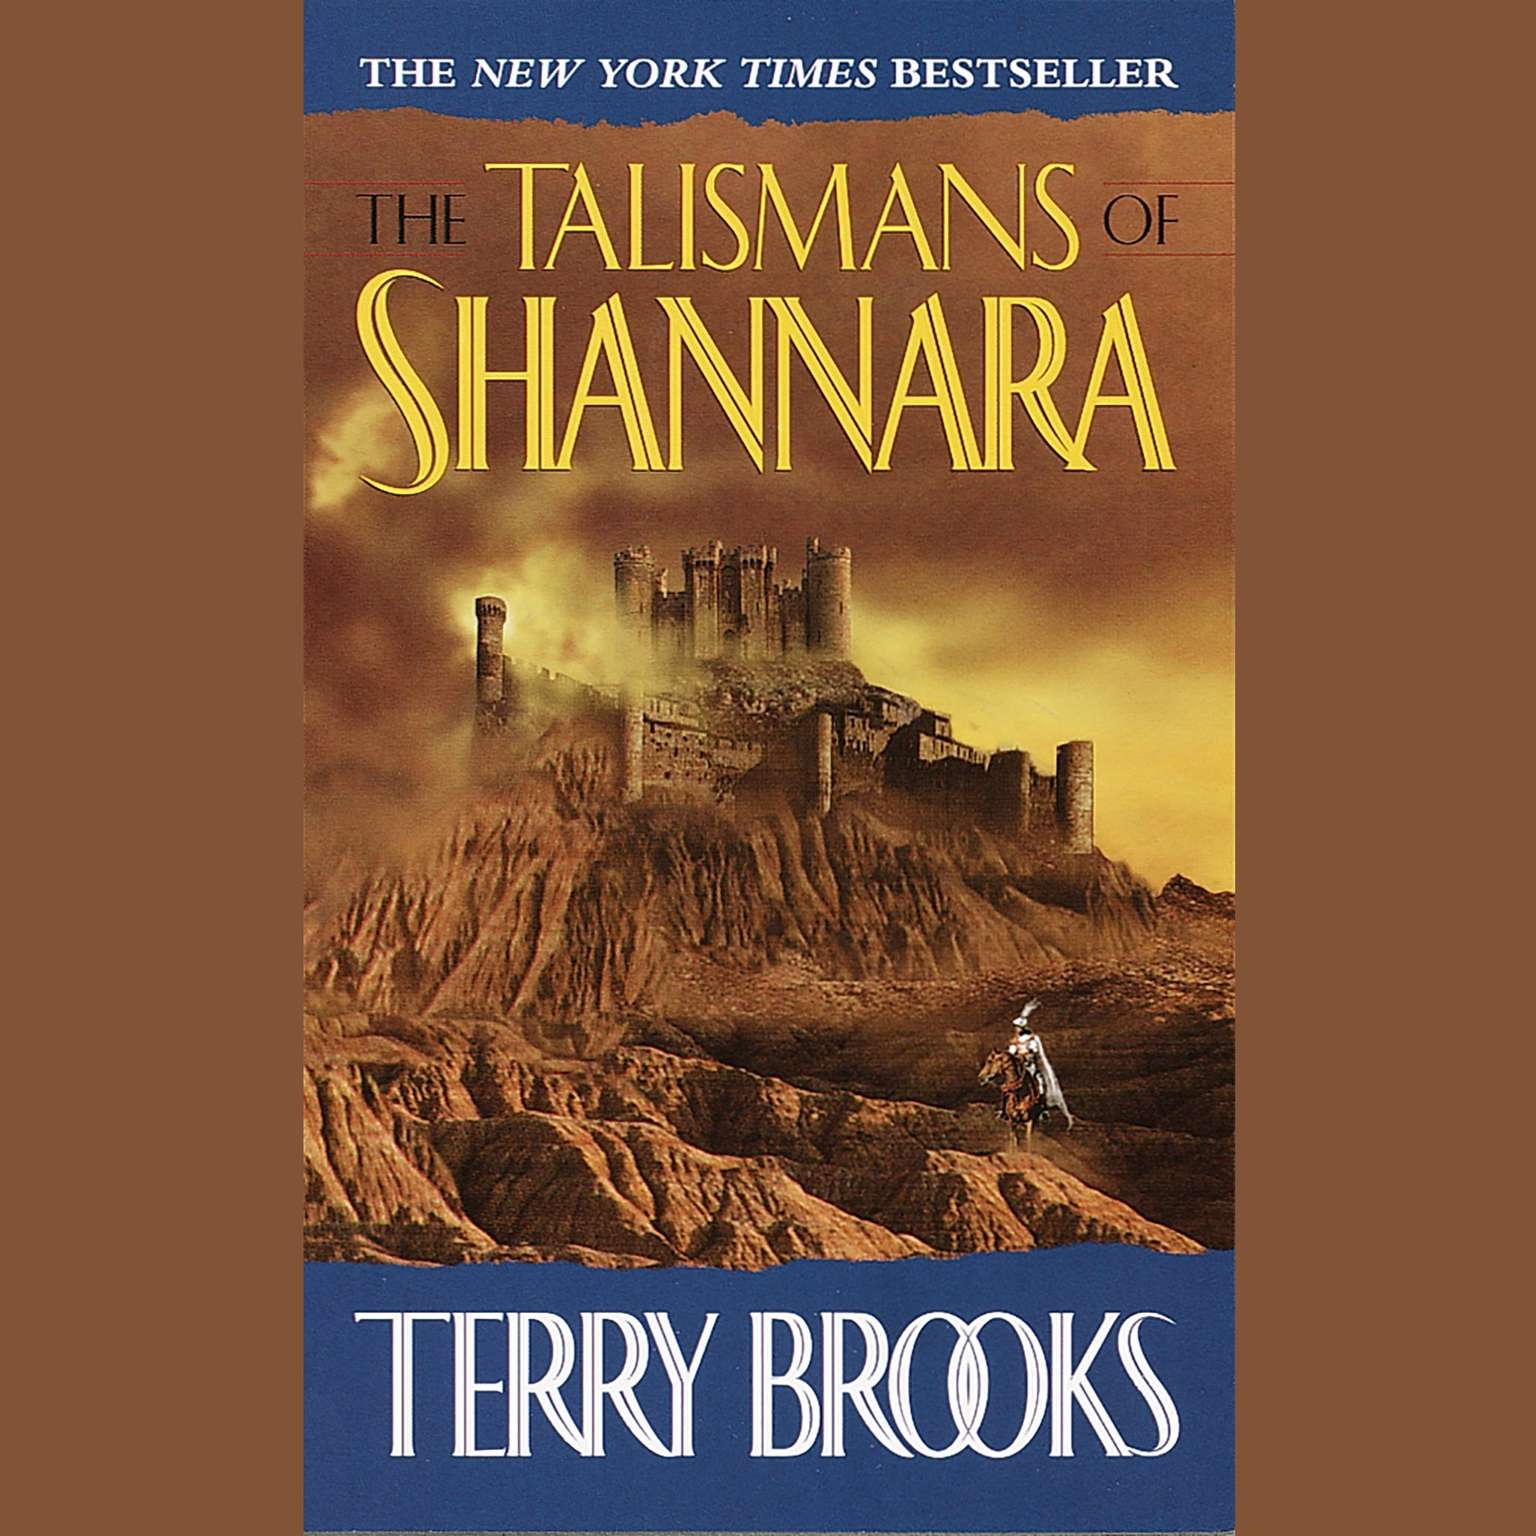 Printable The Talismans of Shannara Audiobook Cover Art